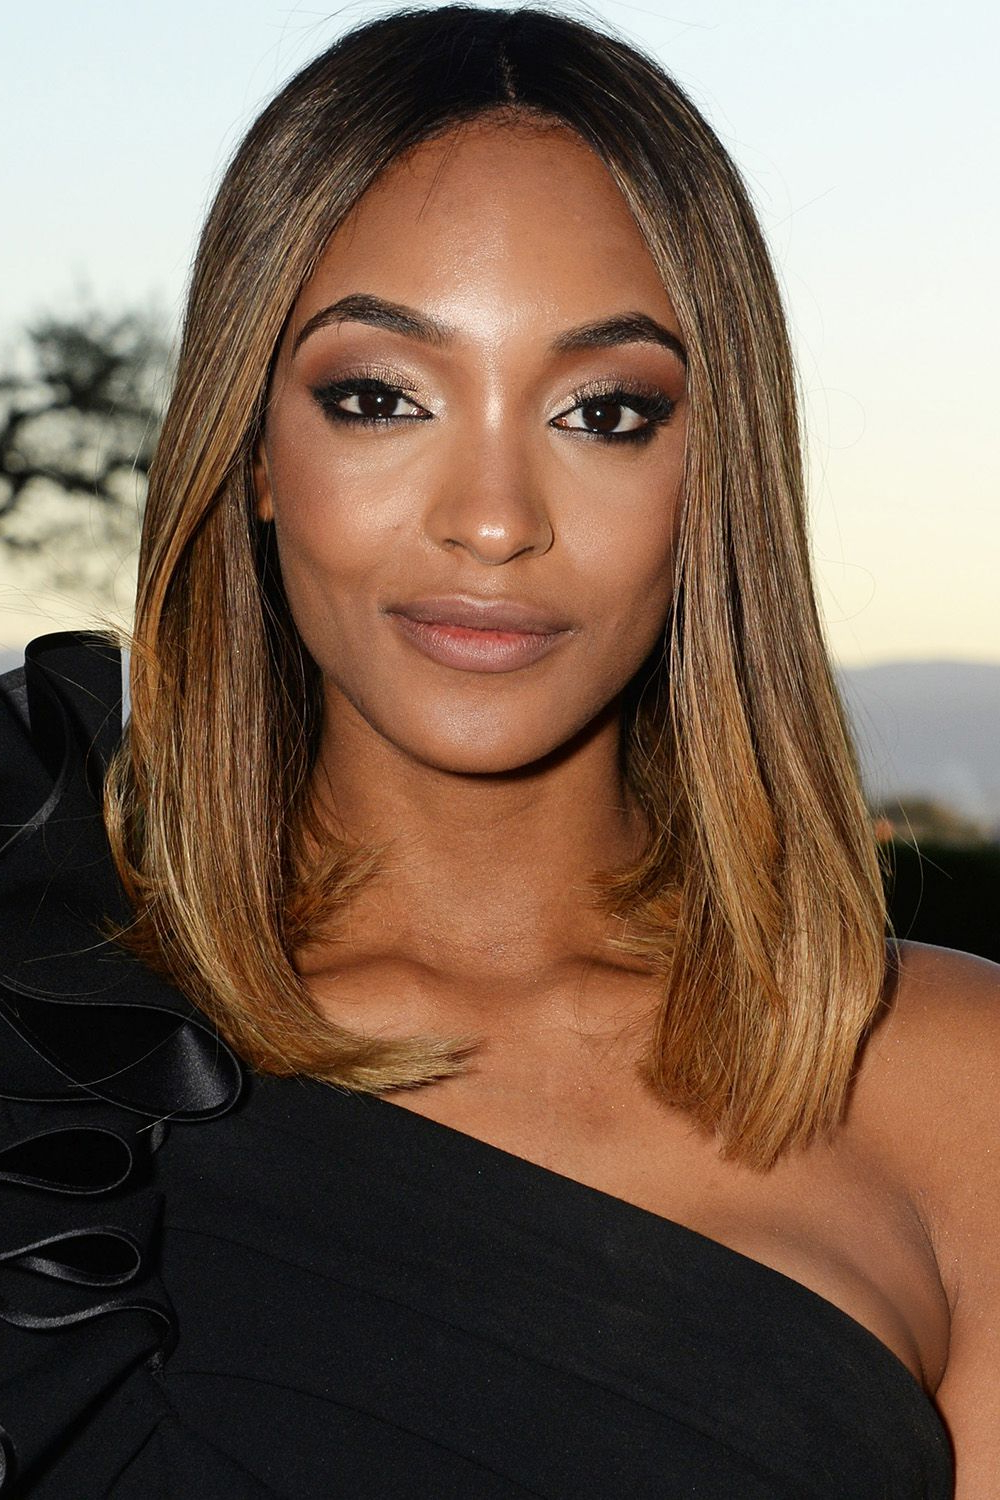 40 Best Medium Hairstyles – Celebrities With Shoulder Length Haircuts Throughout Popular Very Medium Haircuts For Black Women (View 6 of 20)